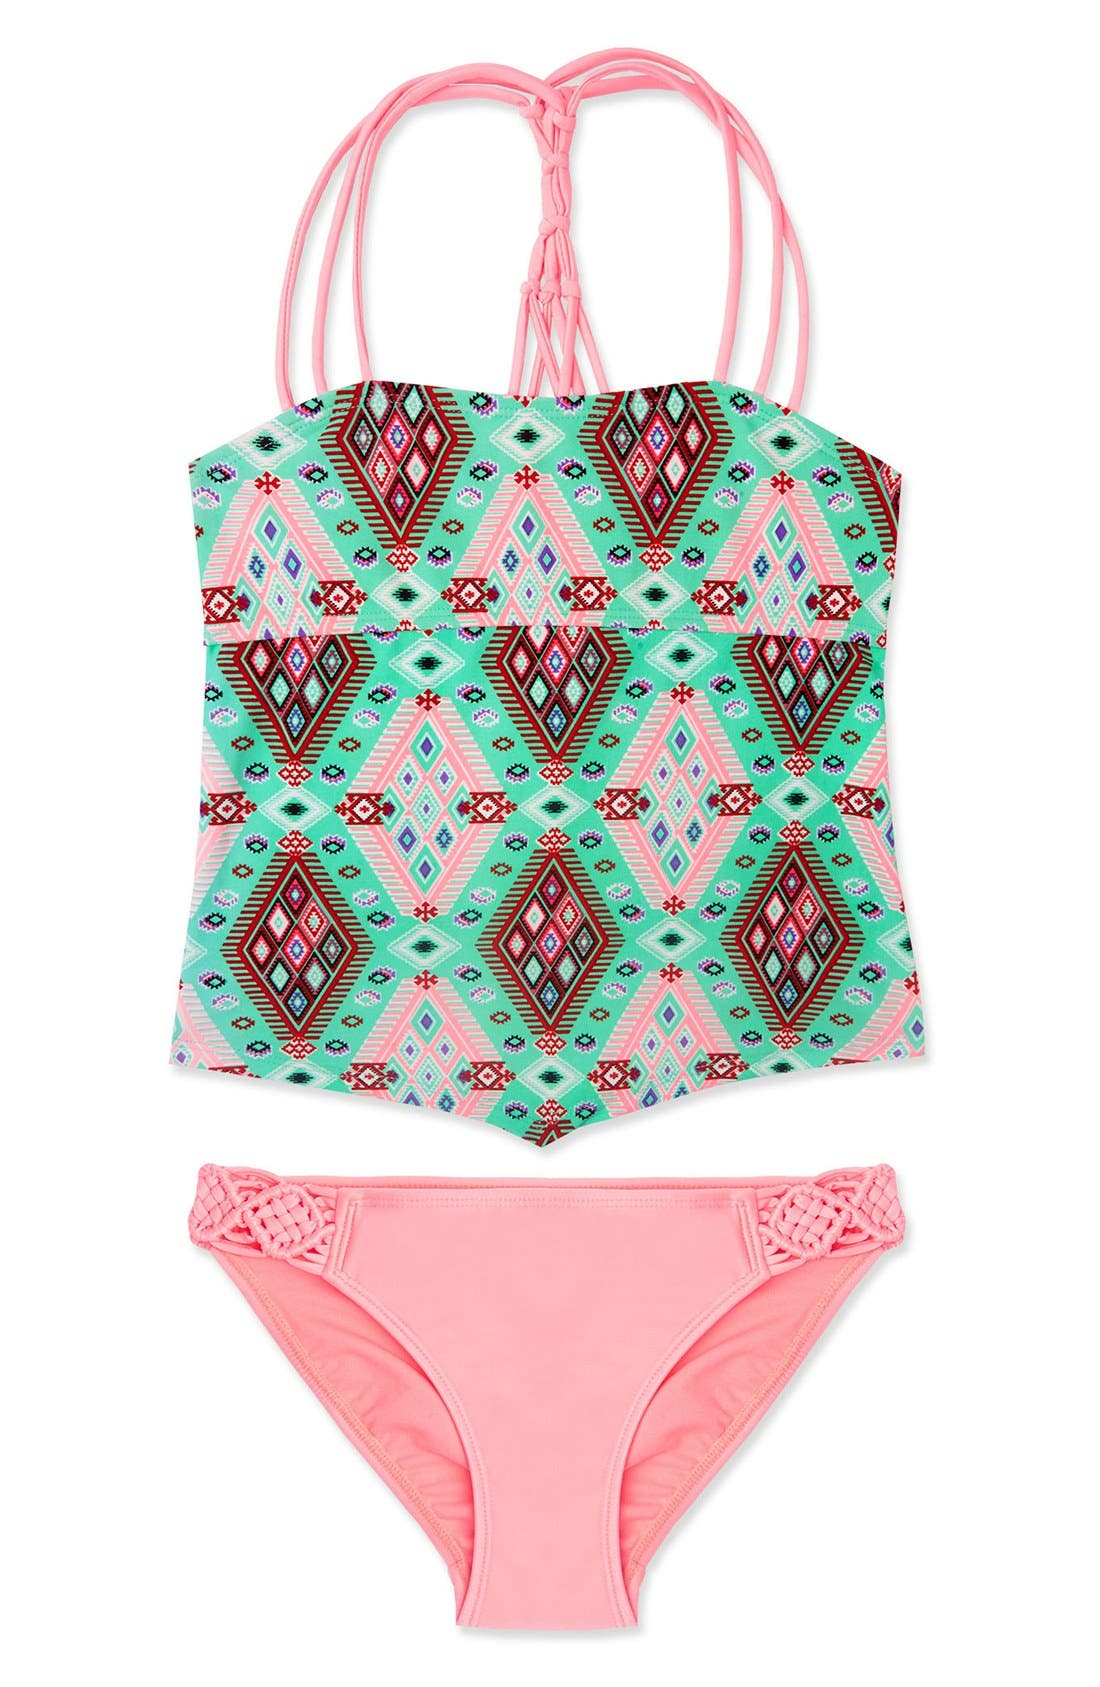 'Aztec Harvest' Two-Piece Swimsuit,                             Main thumbnail 1, color,                             300